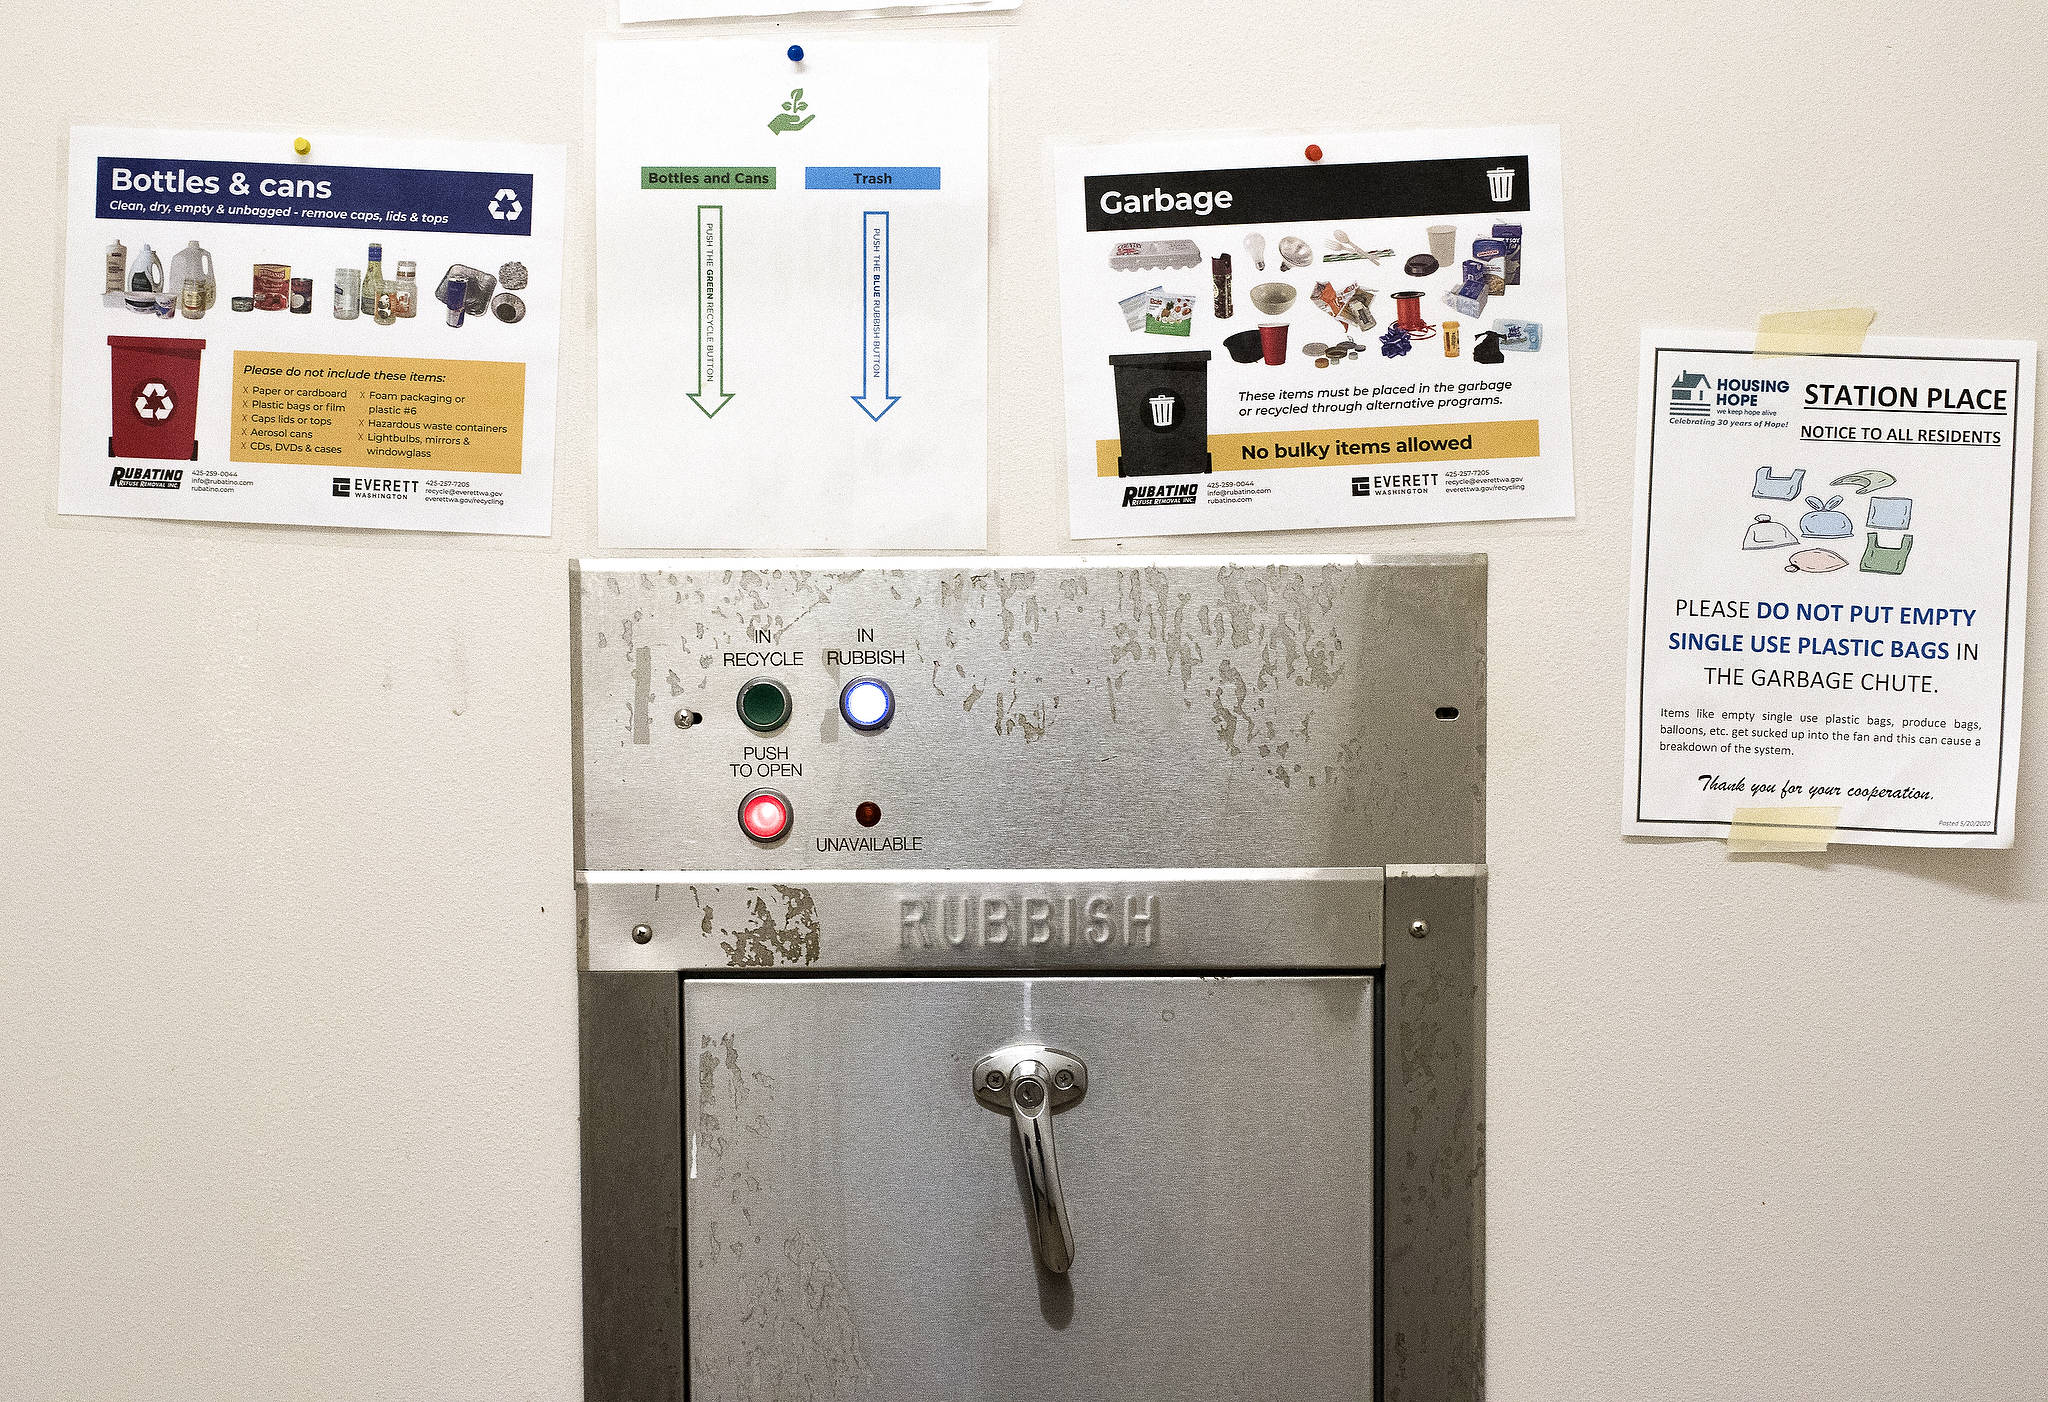 Garbage, recycling and compost are separated by residents by using different buttons for the garbage chute on each level of HopeWorks Station in Everett. (Andy Bronson / The Herald)